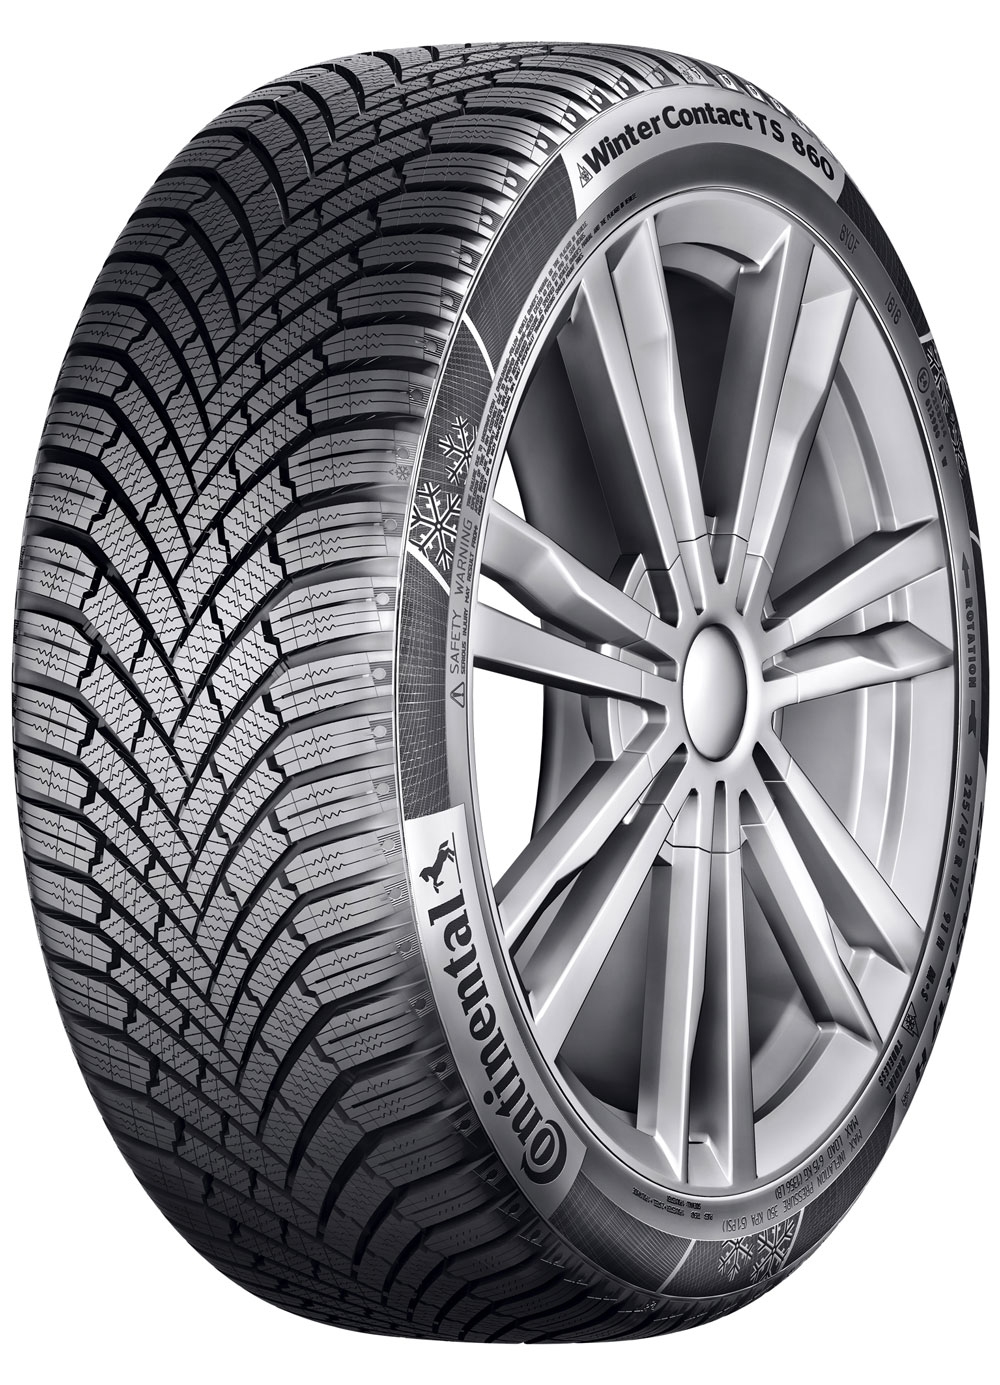 Anvelope Continental WinterContact TS 860 S ROF 255/55R20 110H Iarna